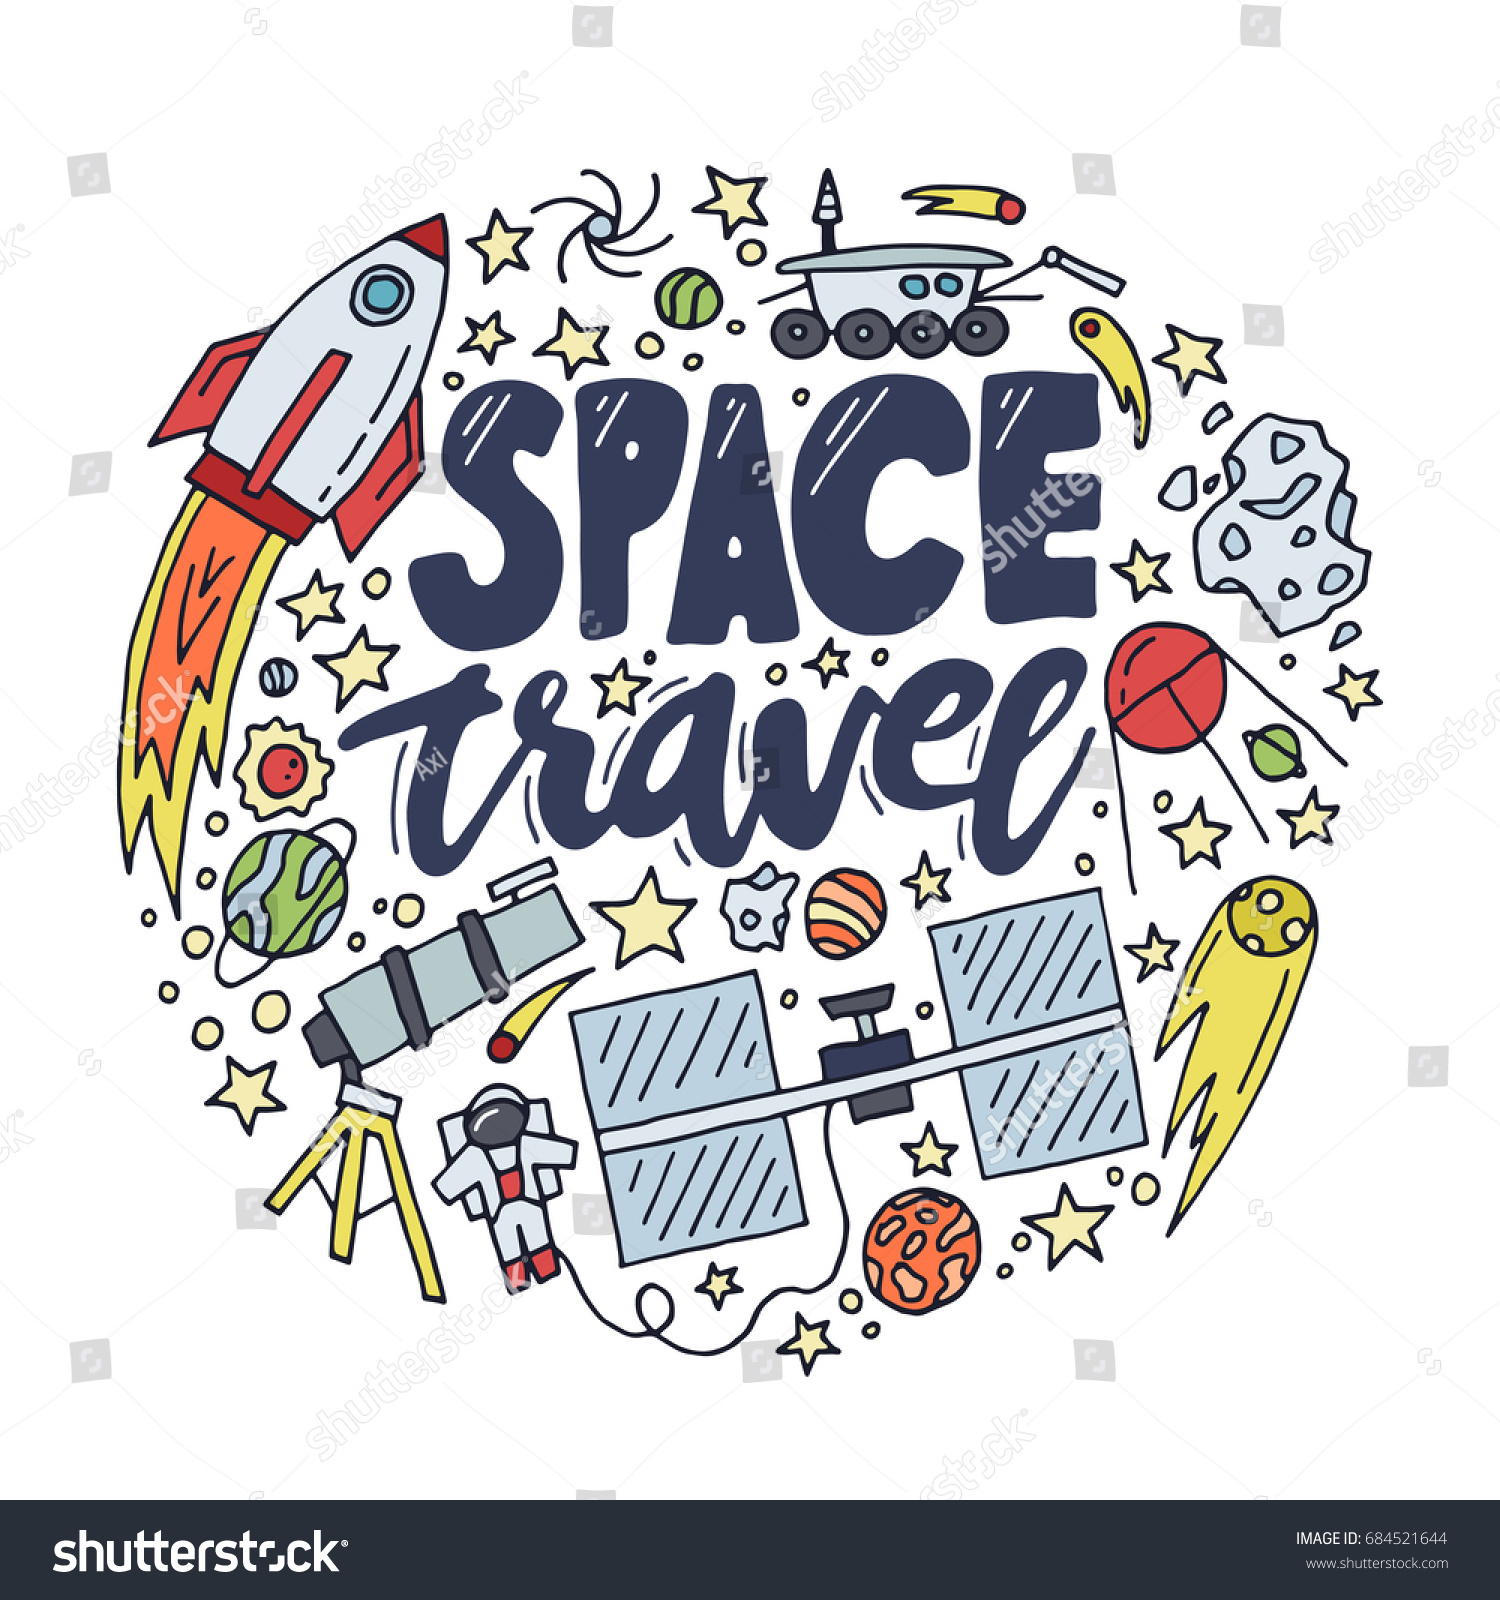 Space travel vector illustration. Cosmos discovery and exploration poster.  Doodle style, cartoon design